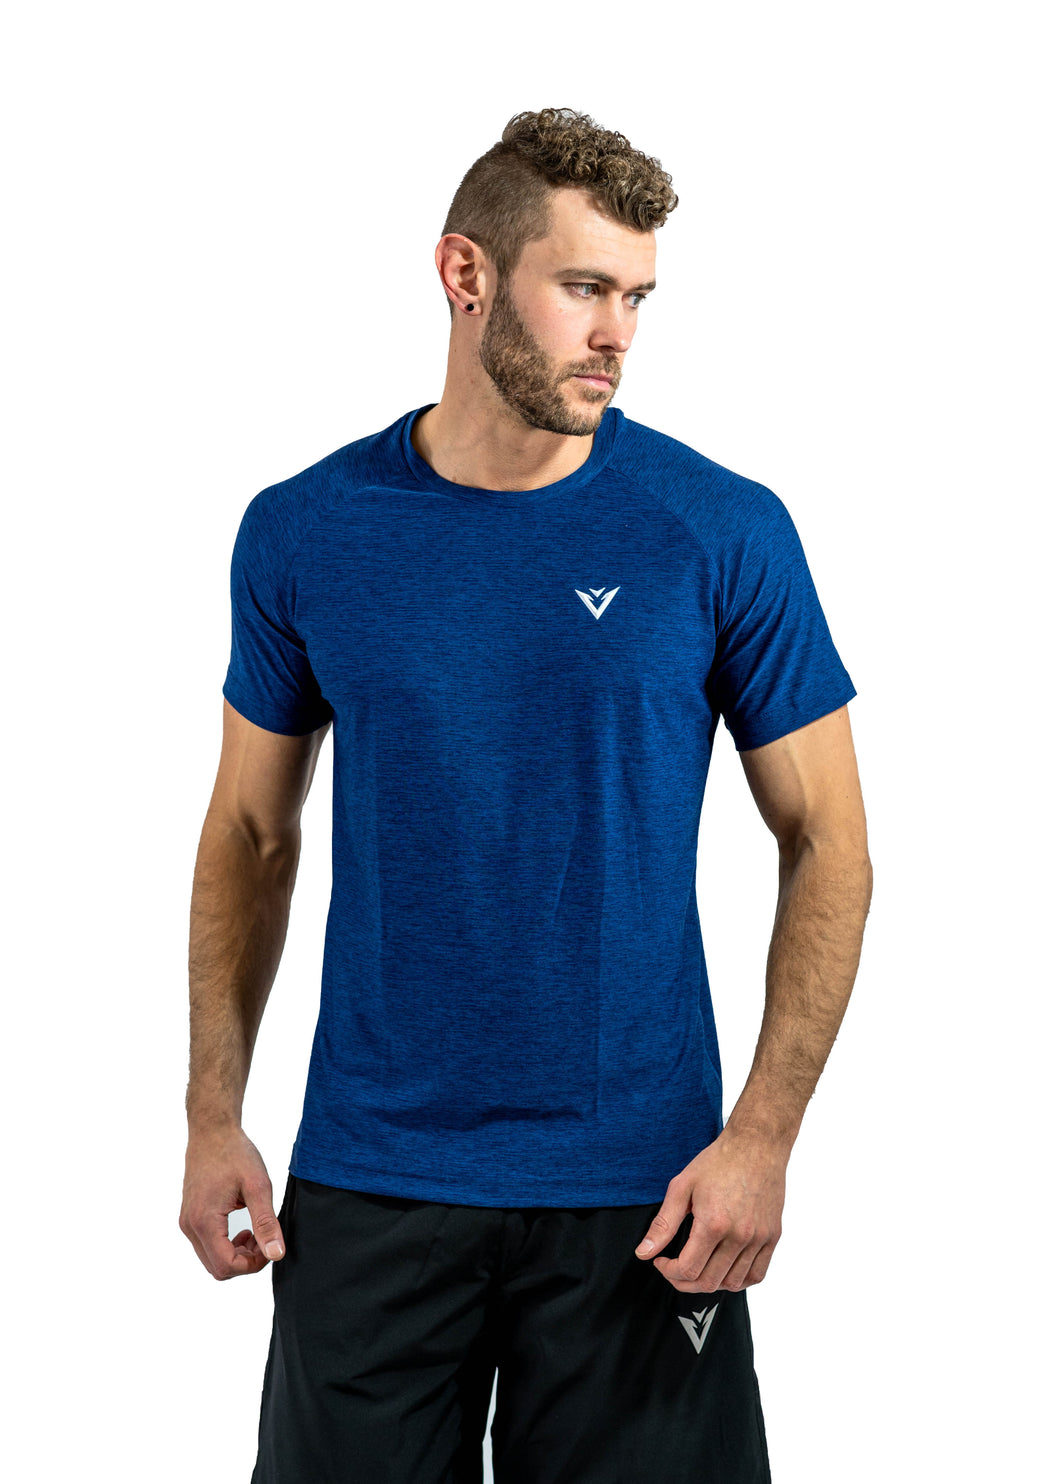 Muscle fit t-shirt blue t-shirt polyester t-shirt polyester gym t-shirt